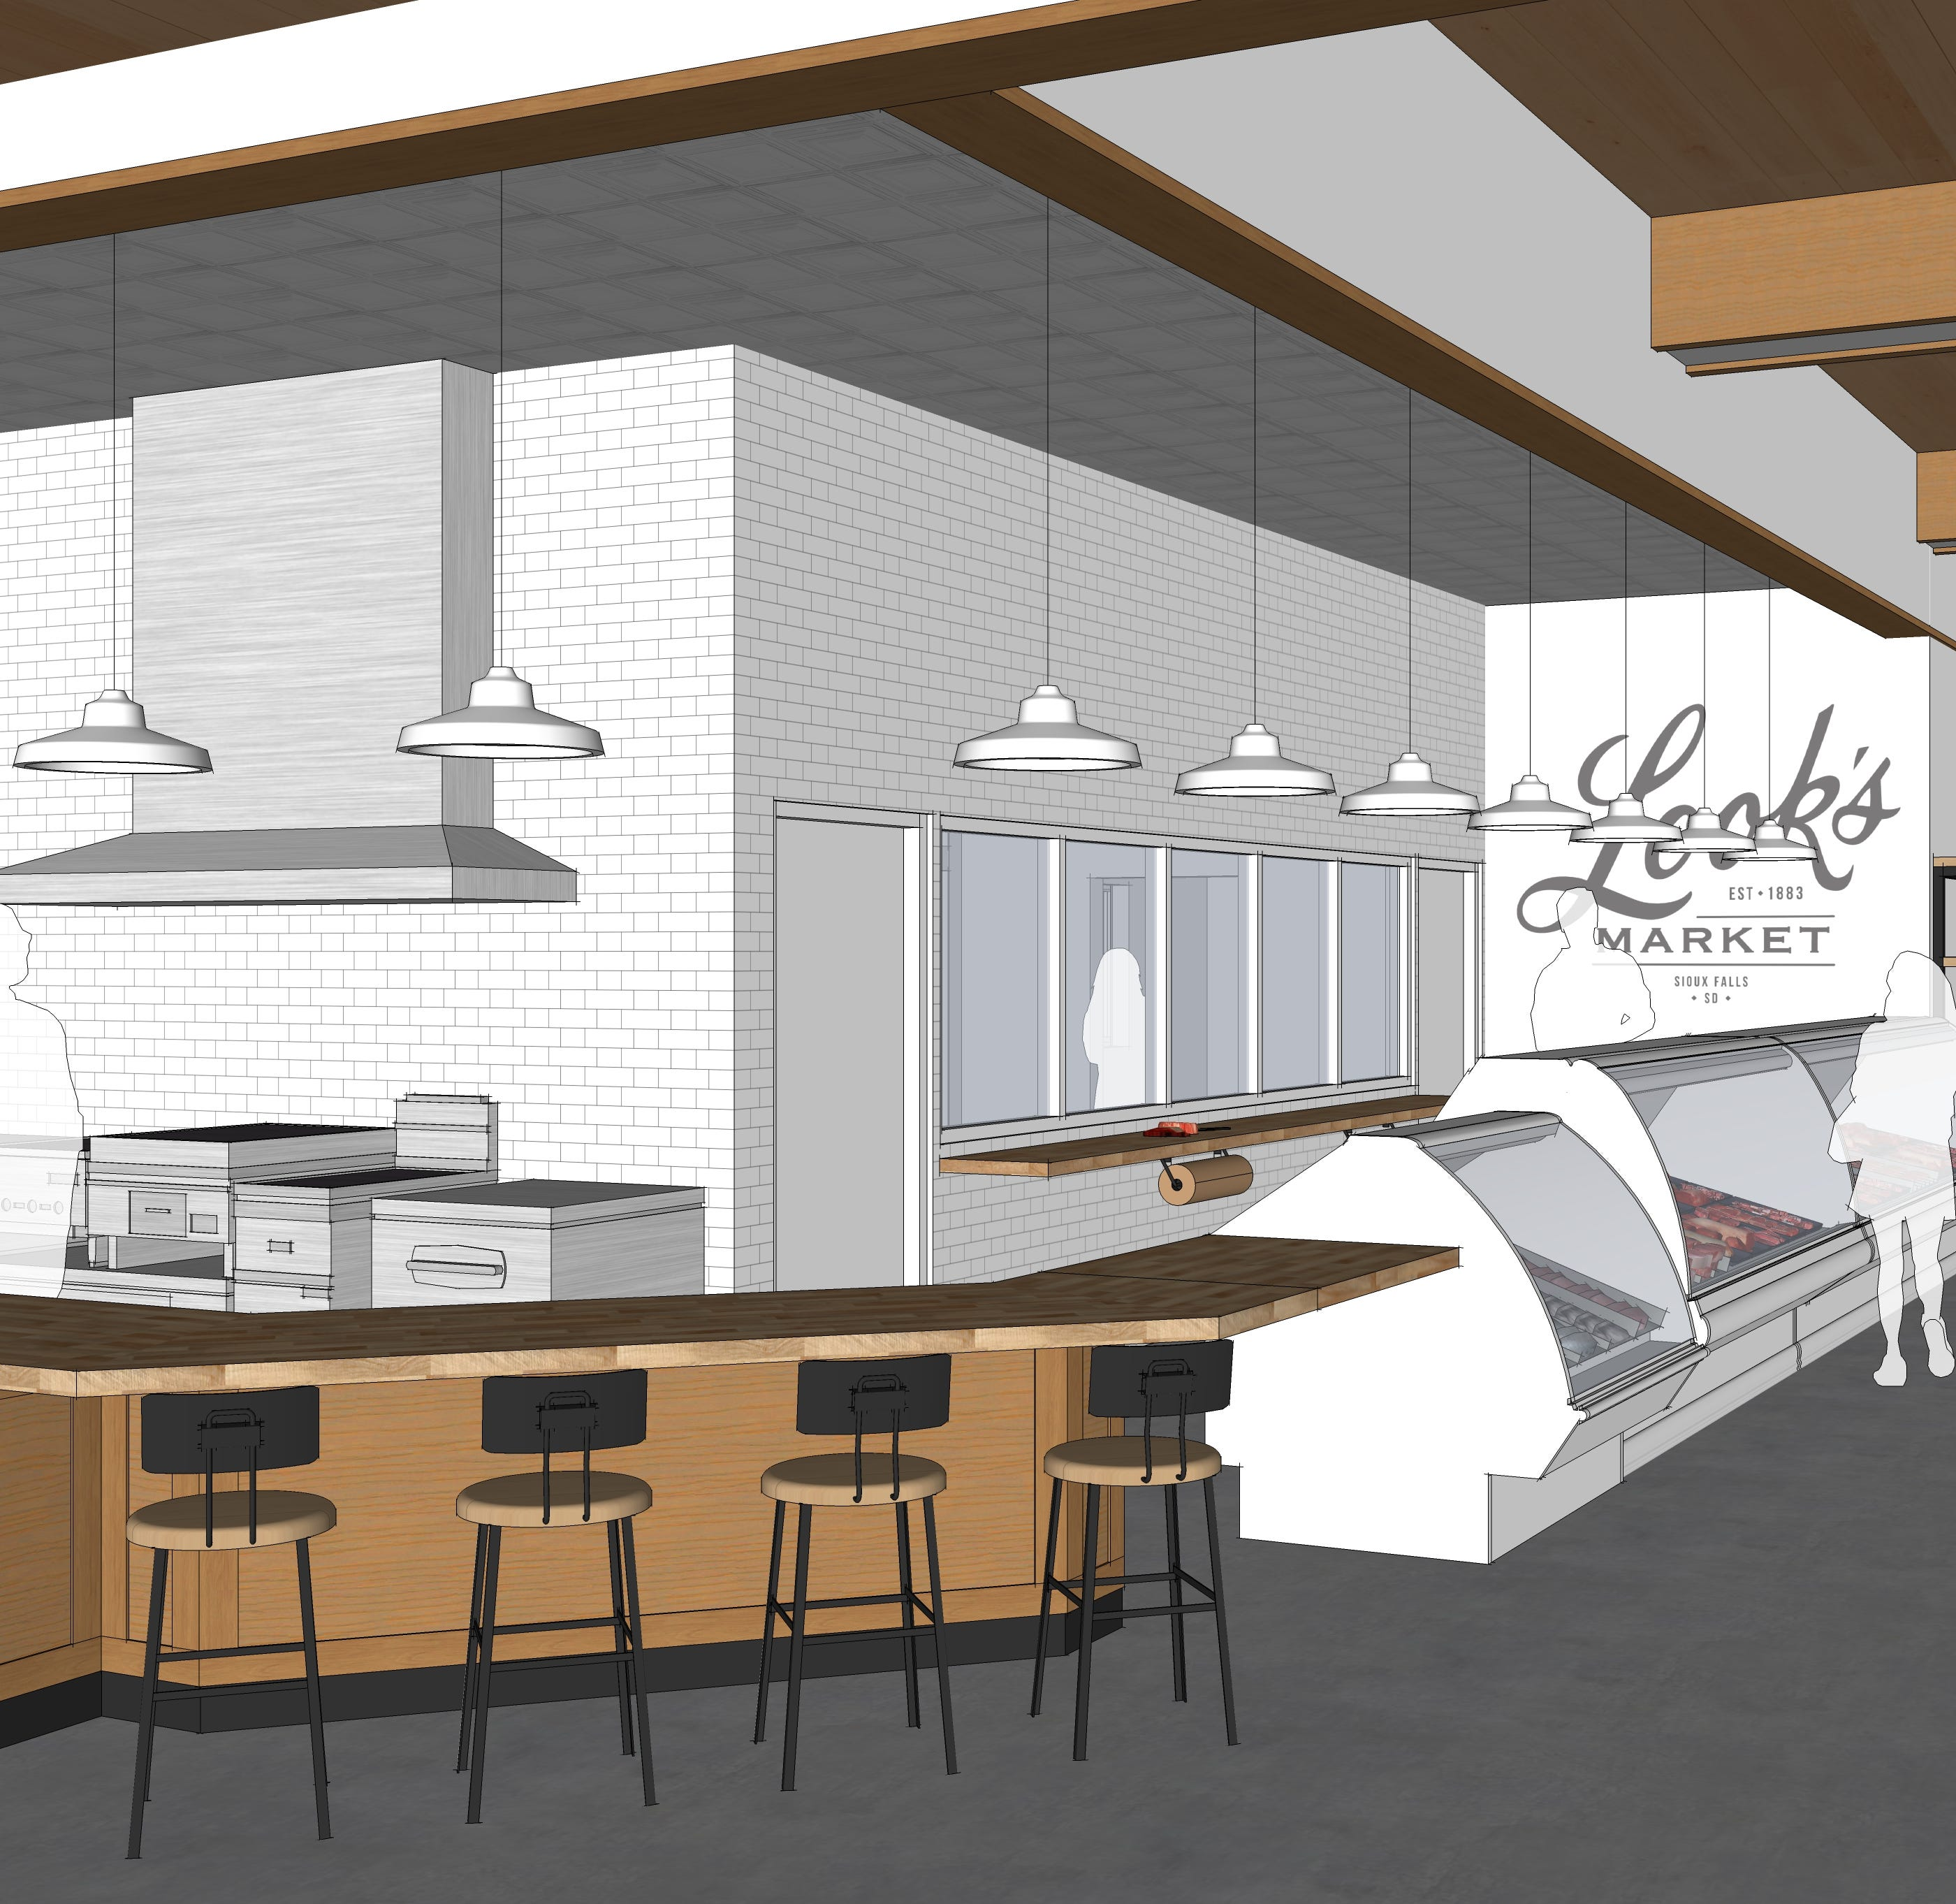 See the Look's Market plans for the former C.J. Callaway's